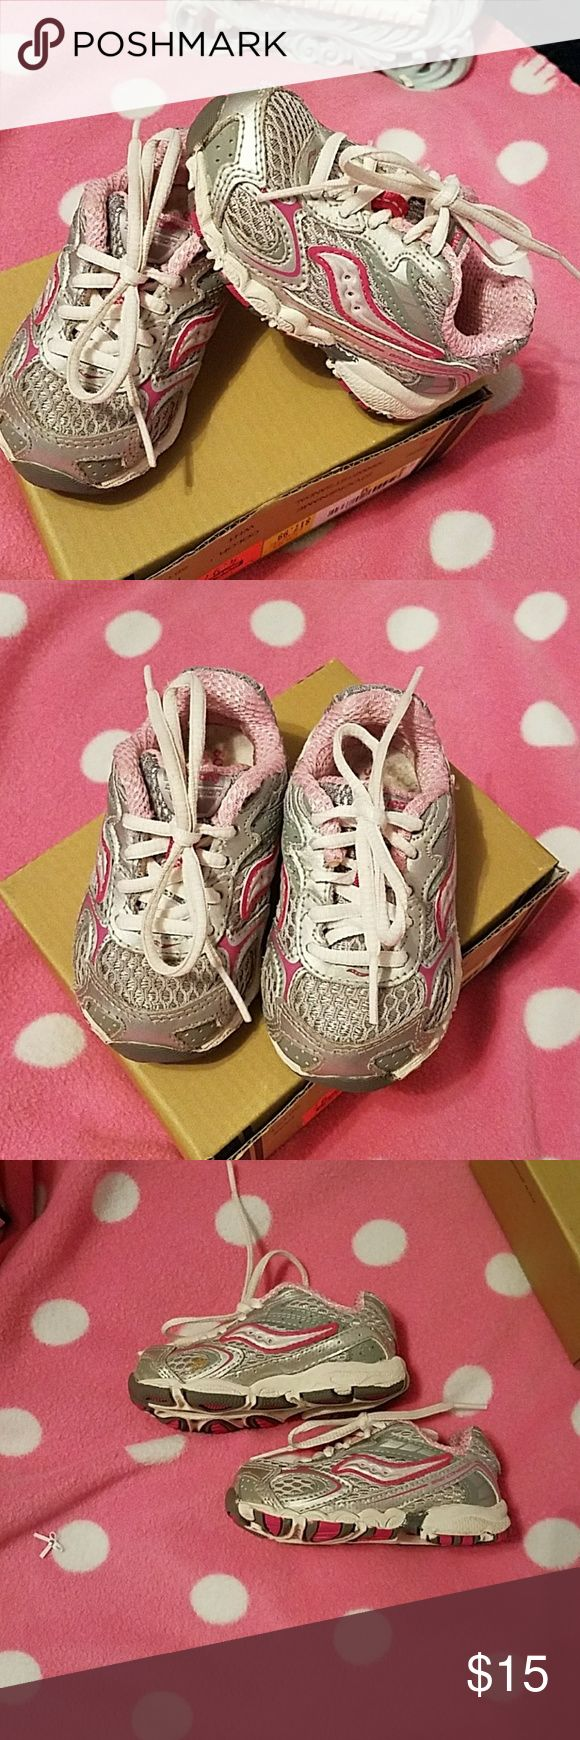 Saucony Baby tennis shoes So cute.. pink and gray  Great shape Saucony Shoes